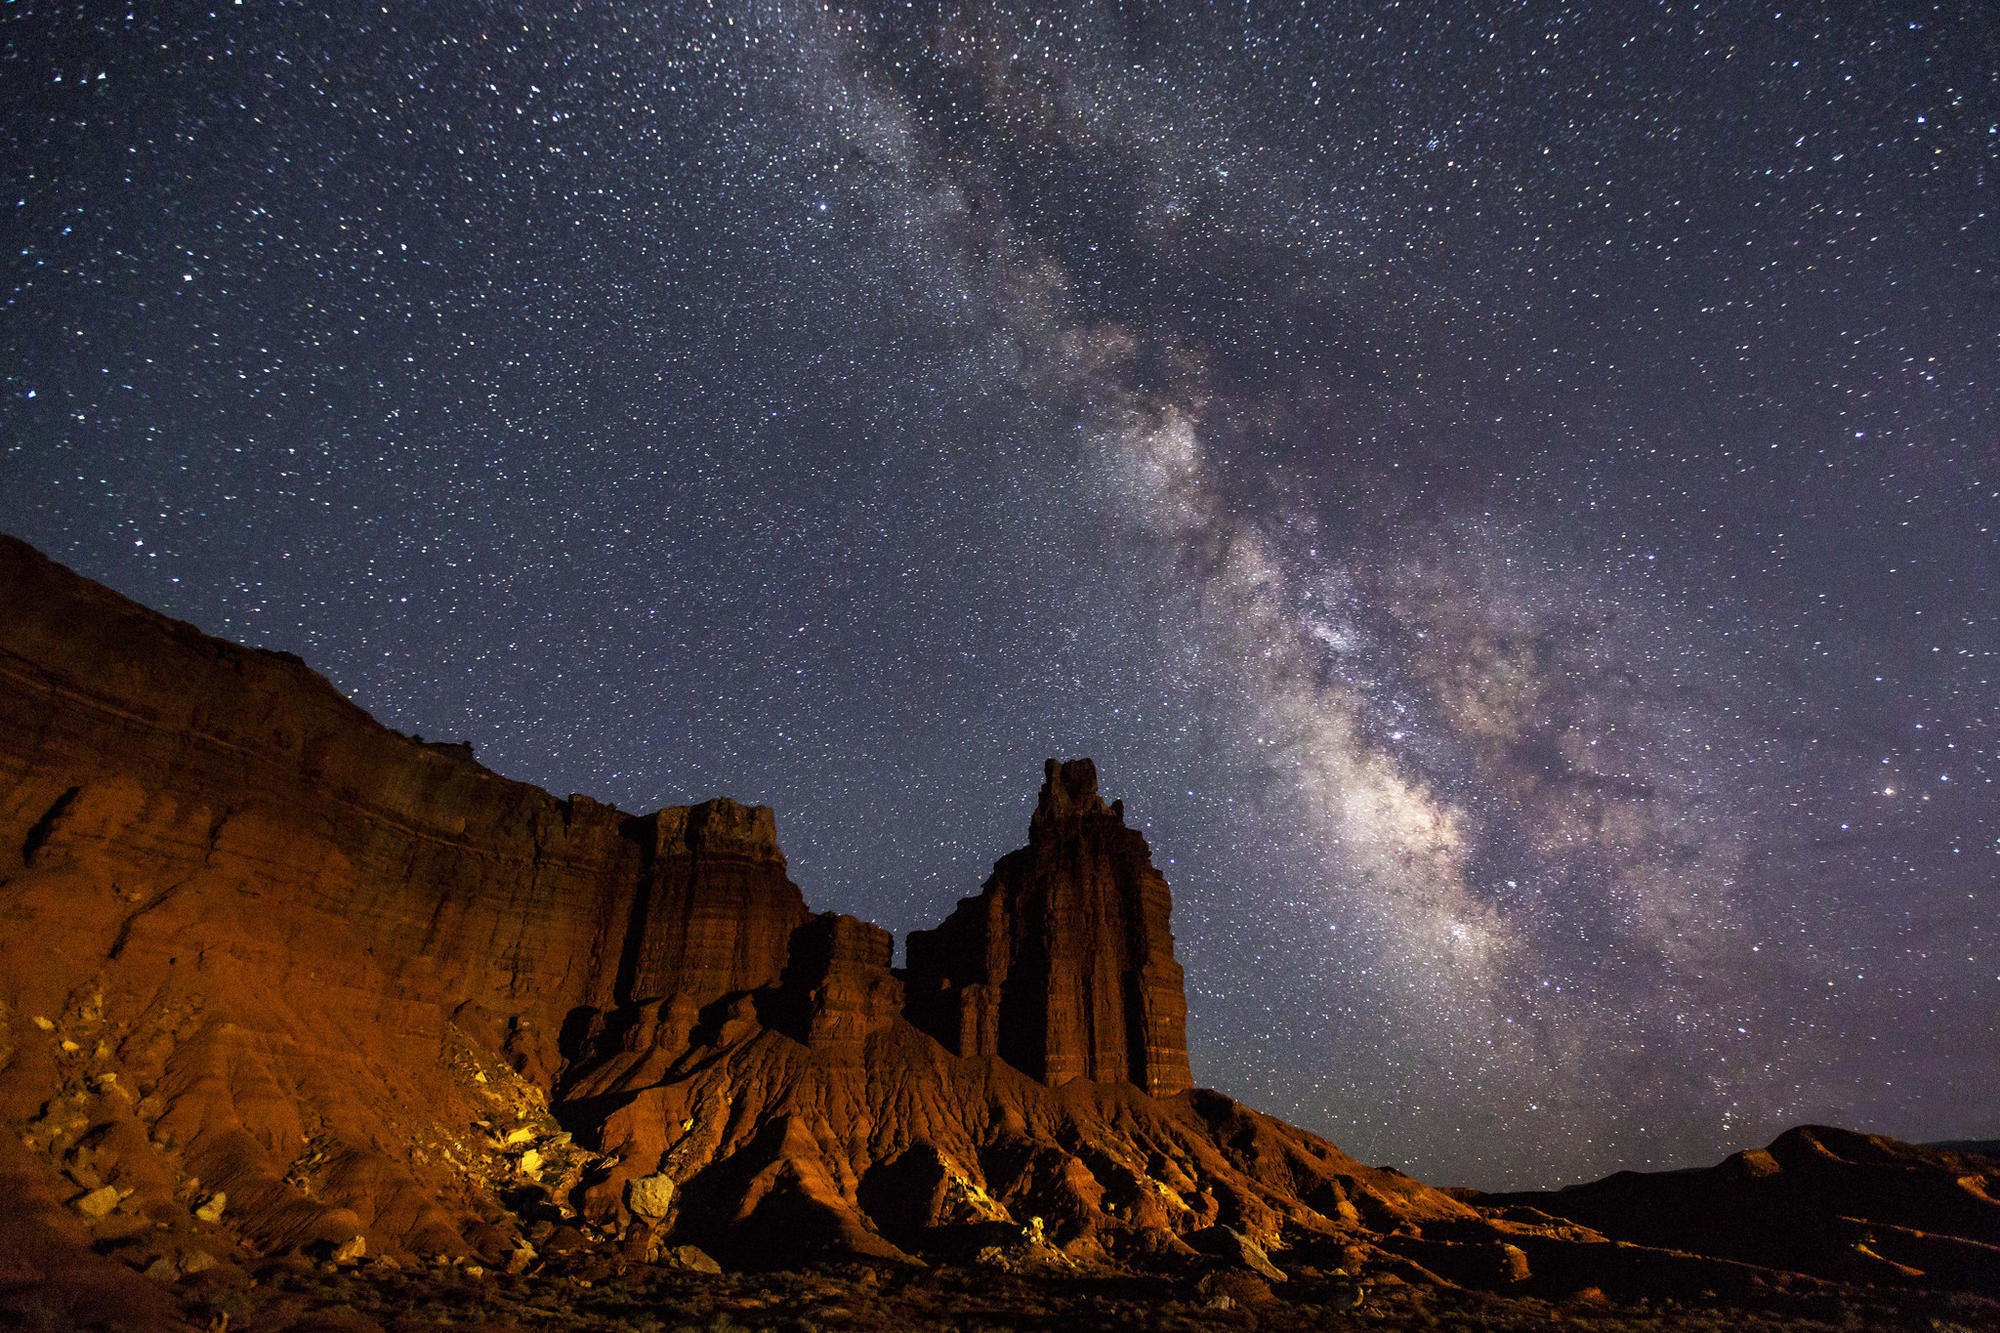 The Milky Way glimmers over Chimney Rock at Capitol Reef National Park, Utah.